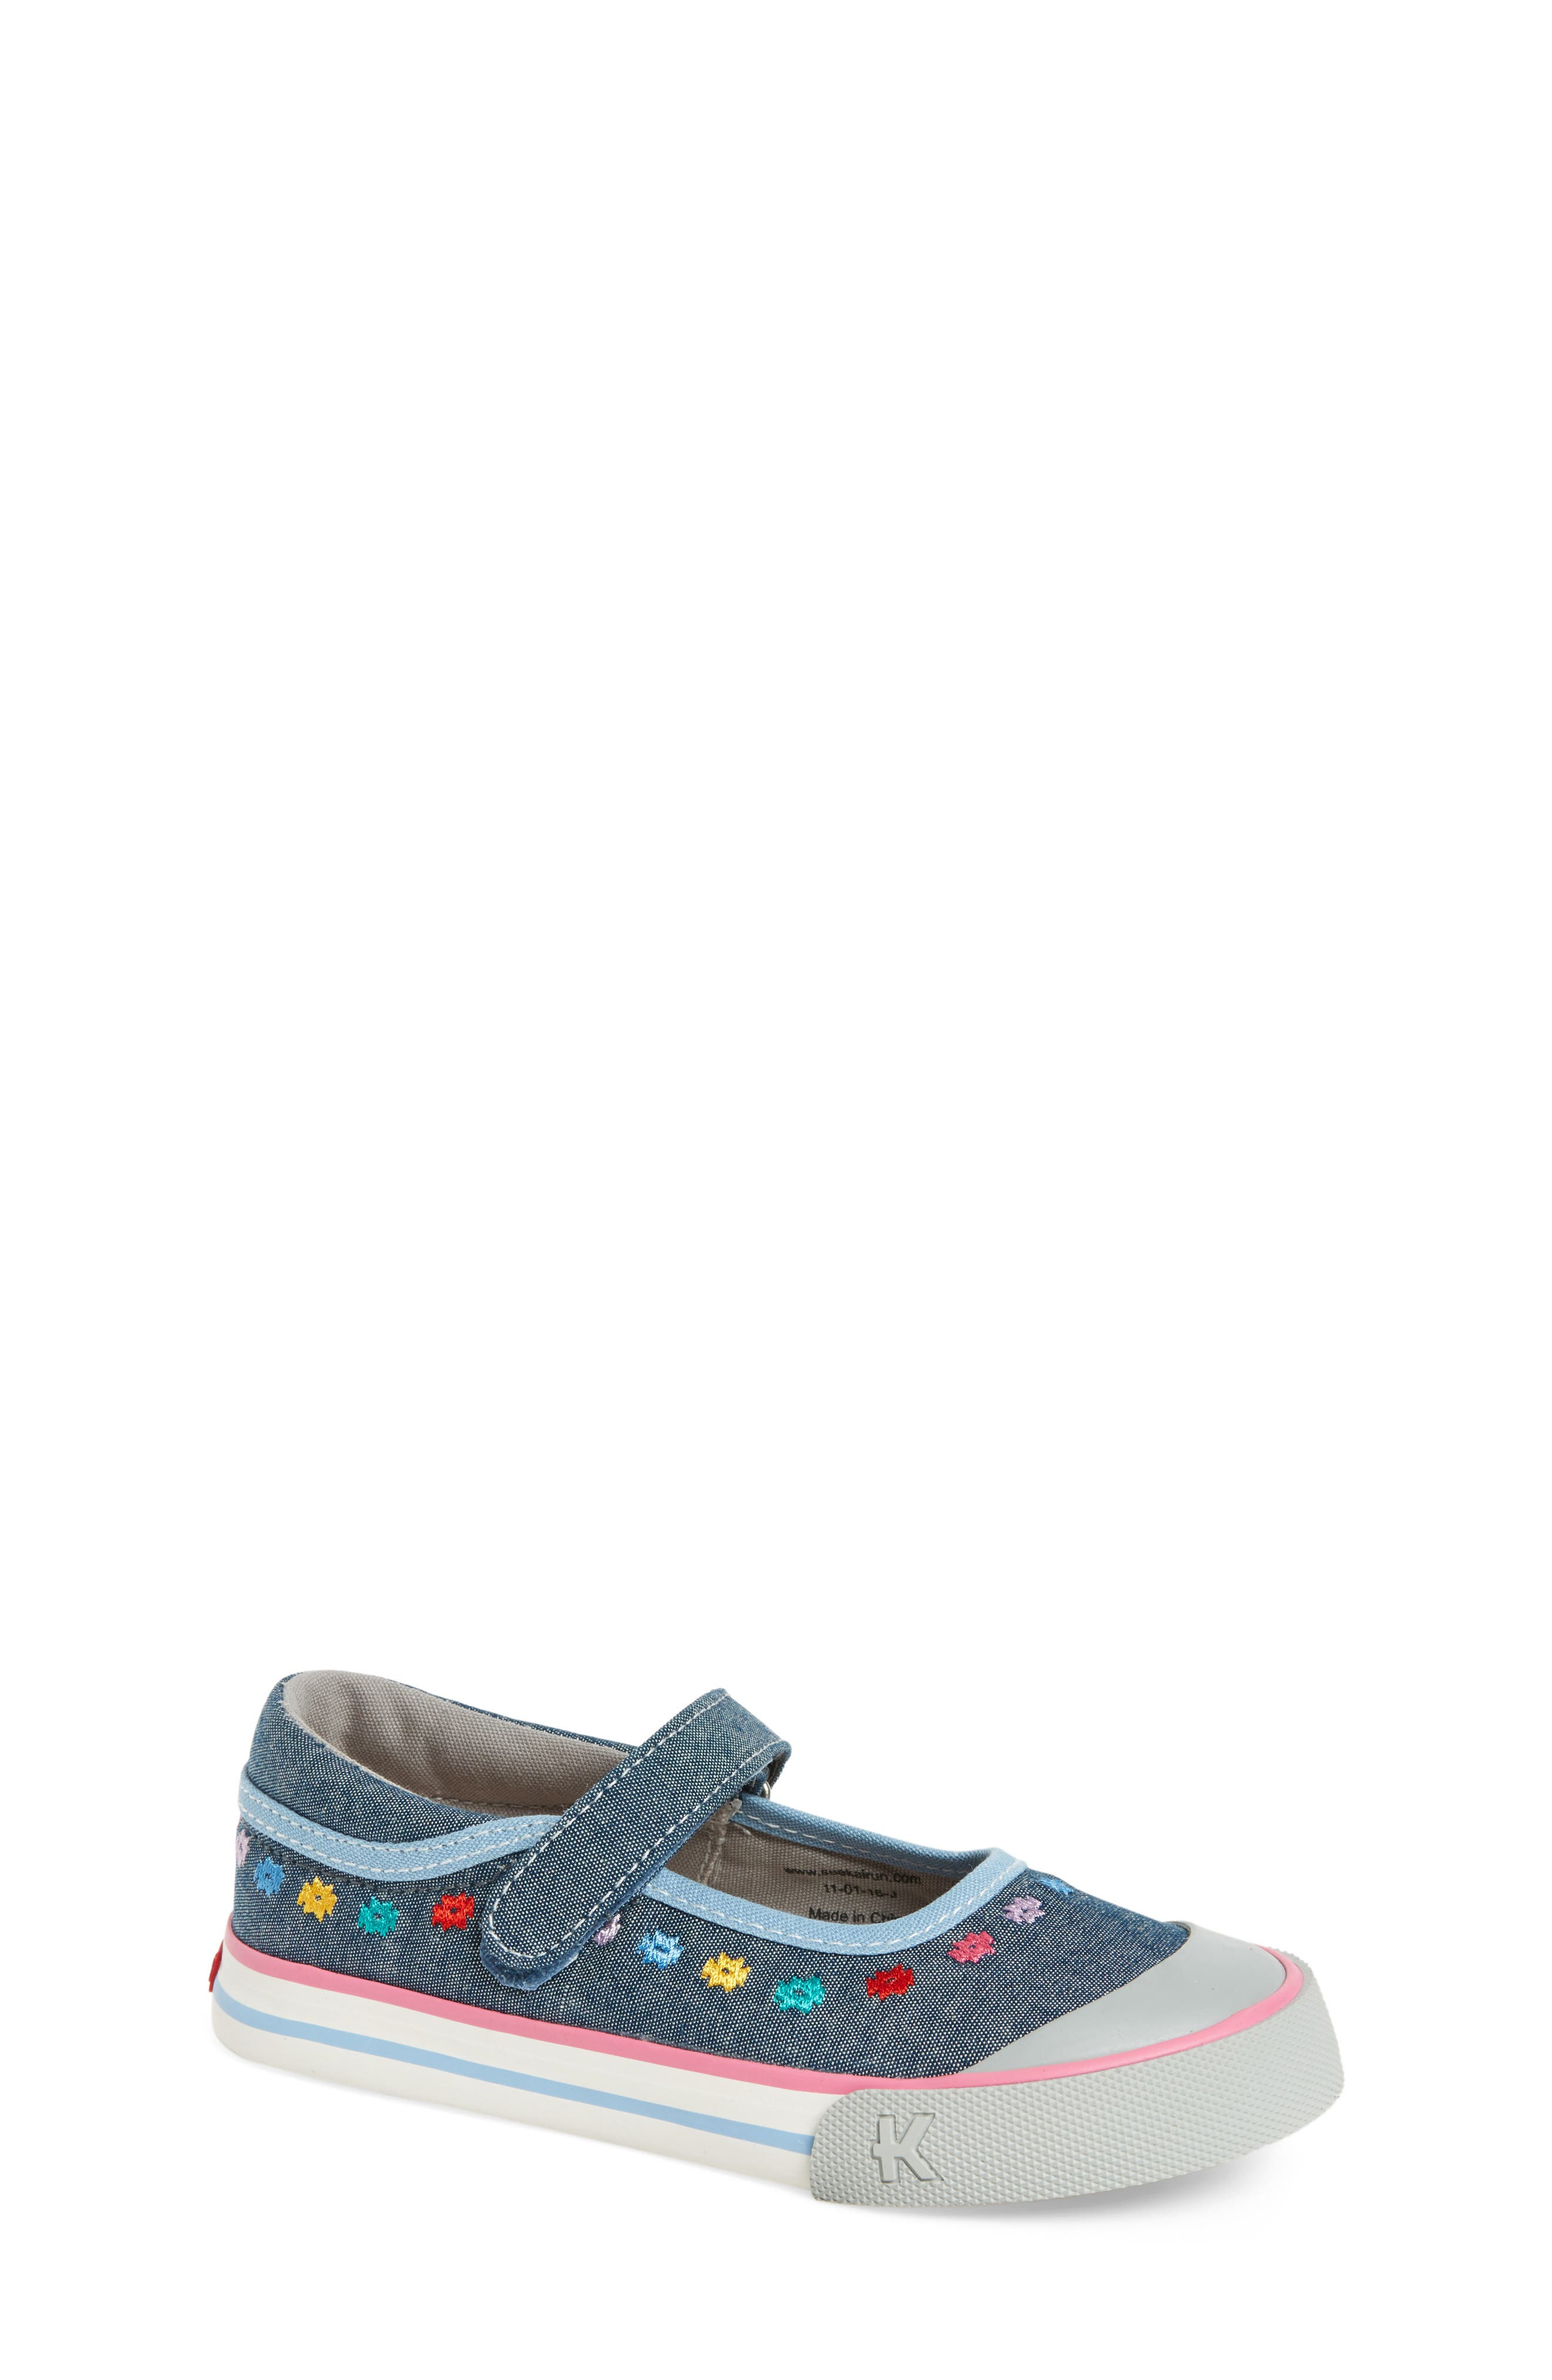 'Marie' Mary Jane Sneaker,                             Main thumbnail 1, color,                             400